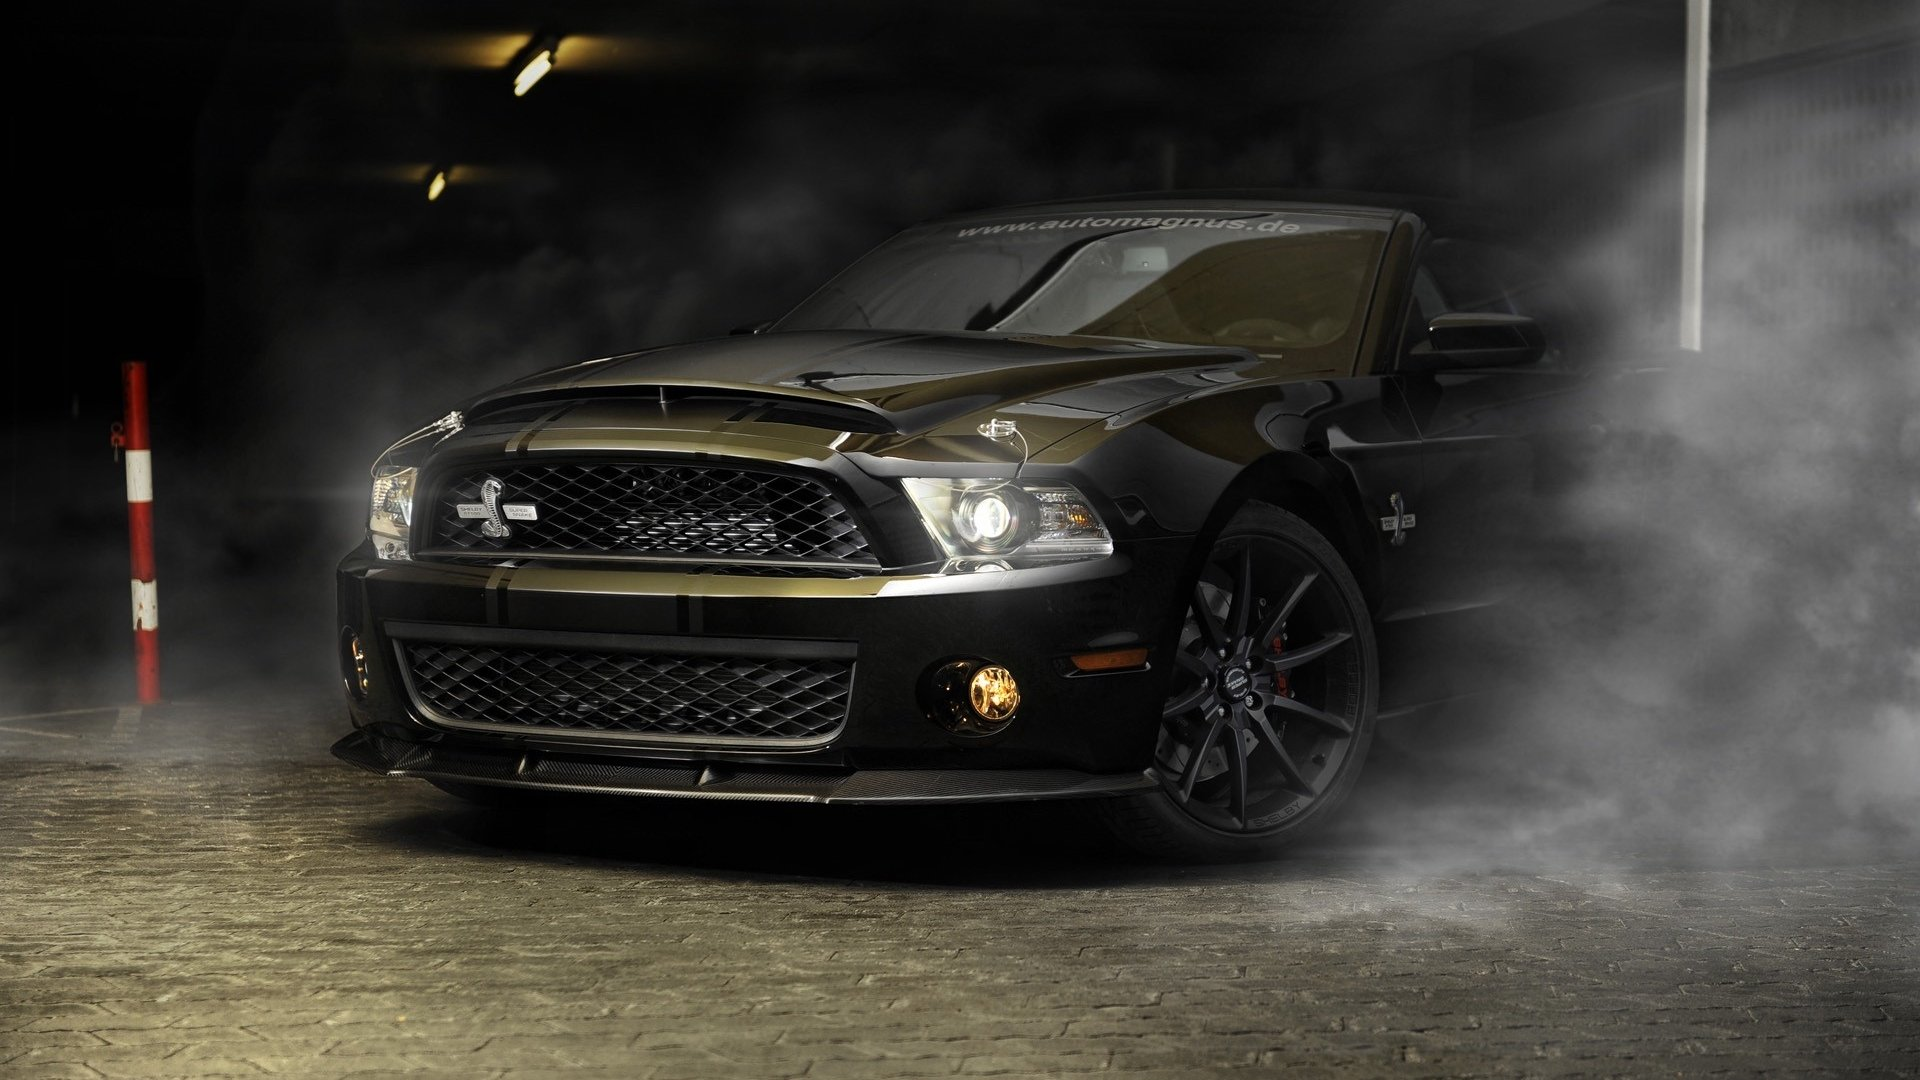 1920x1080 - Ford Mustang GT500 Wallpapers 12